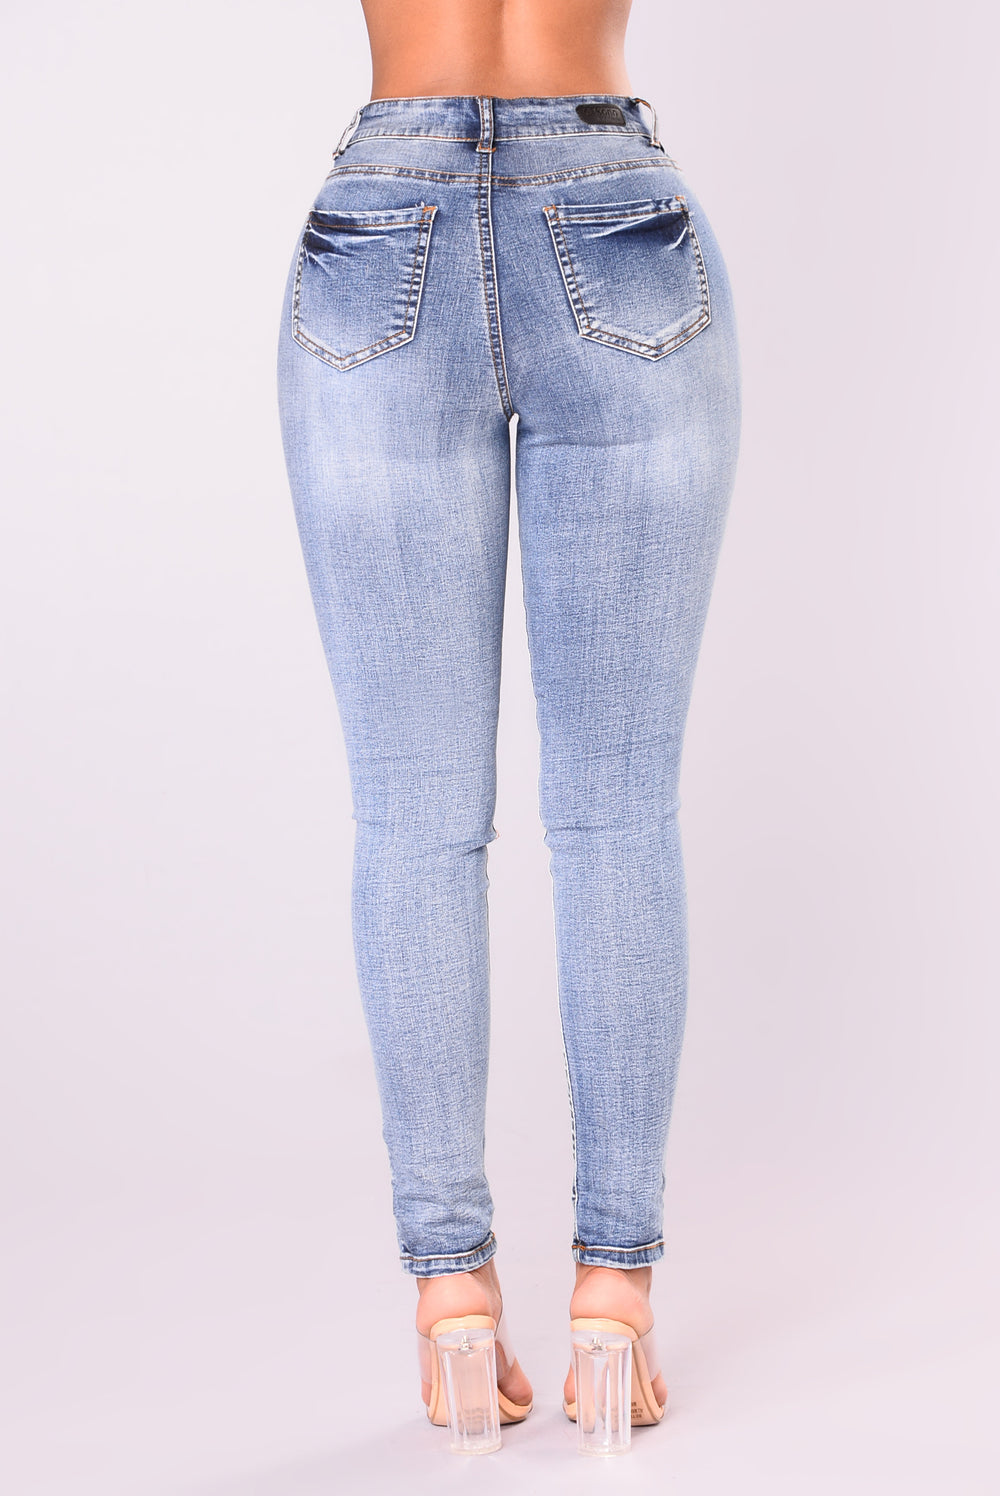 On The Lookout High Rise Jeans - Medium Blue